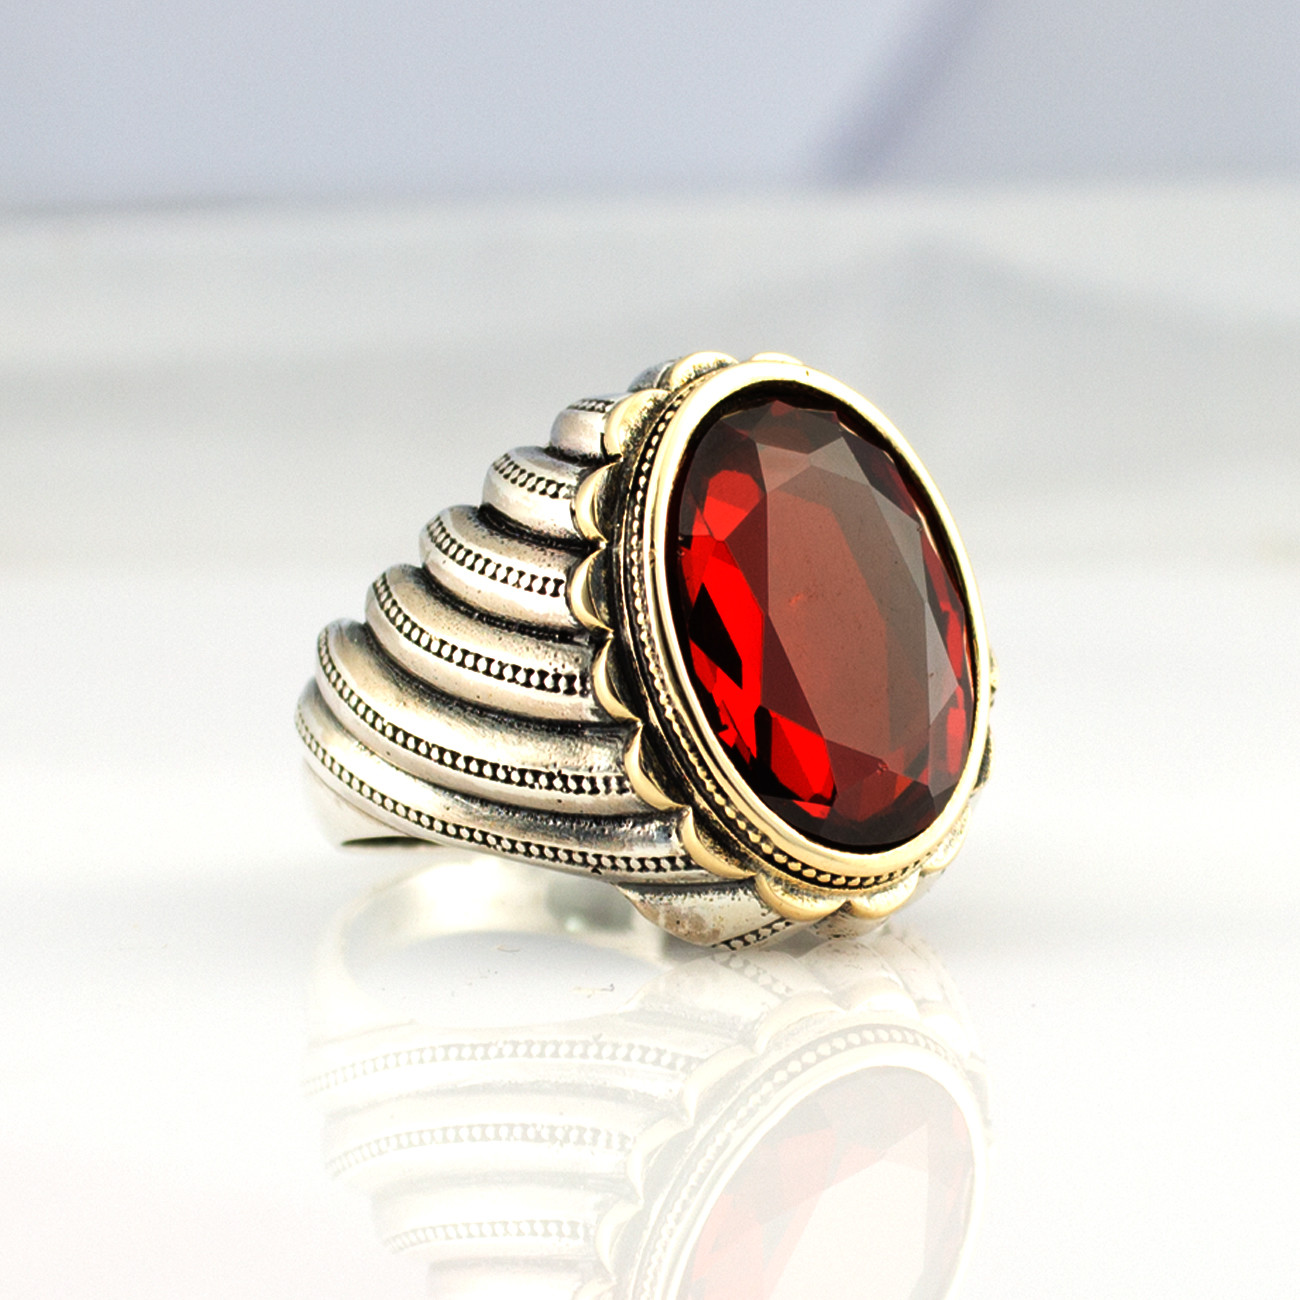 925 Sterling Silver Ring For Men Red Zircon Stone Aqeq Onyx Stone Jewelry Fashion Vintage Gift Rings All Size Made In Turkey